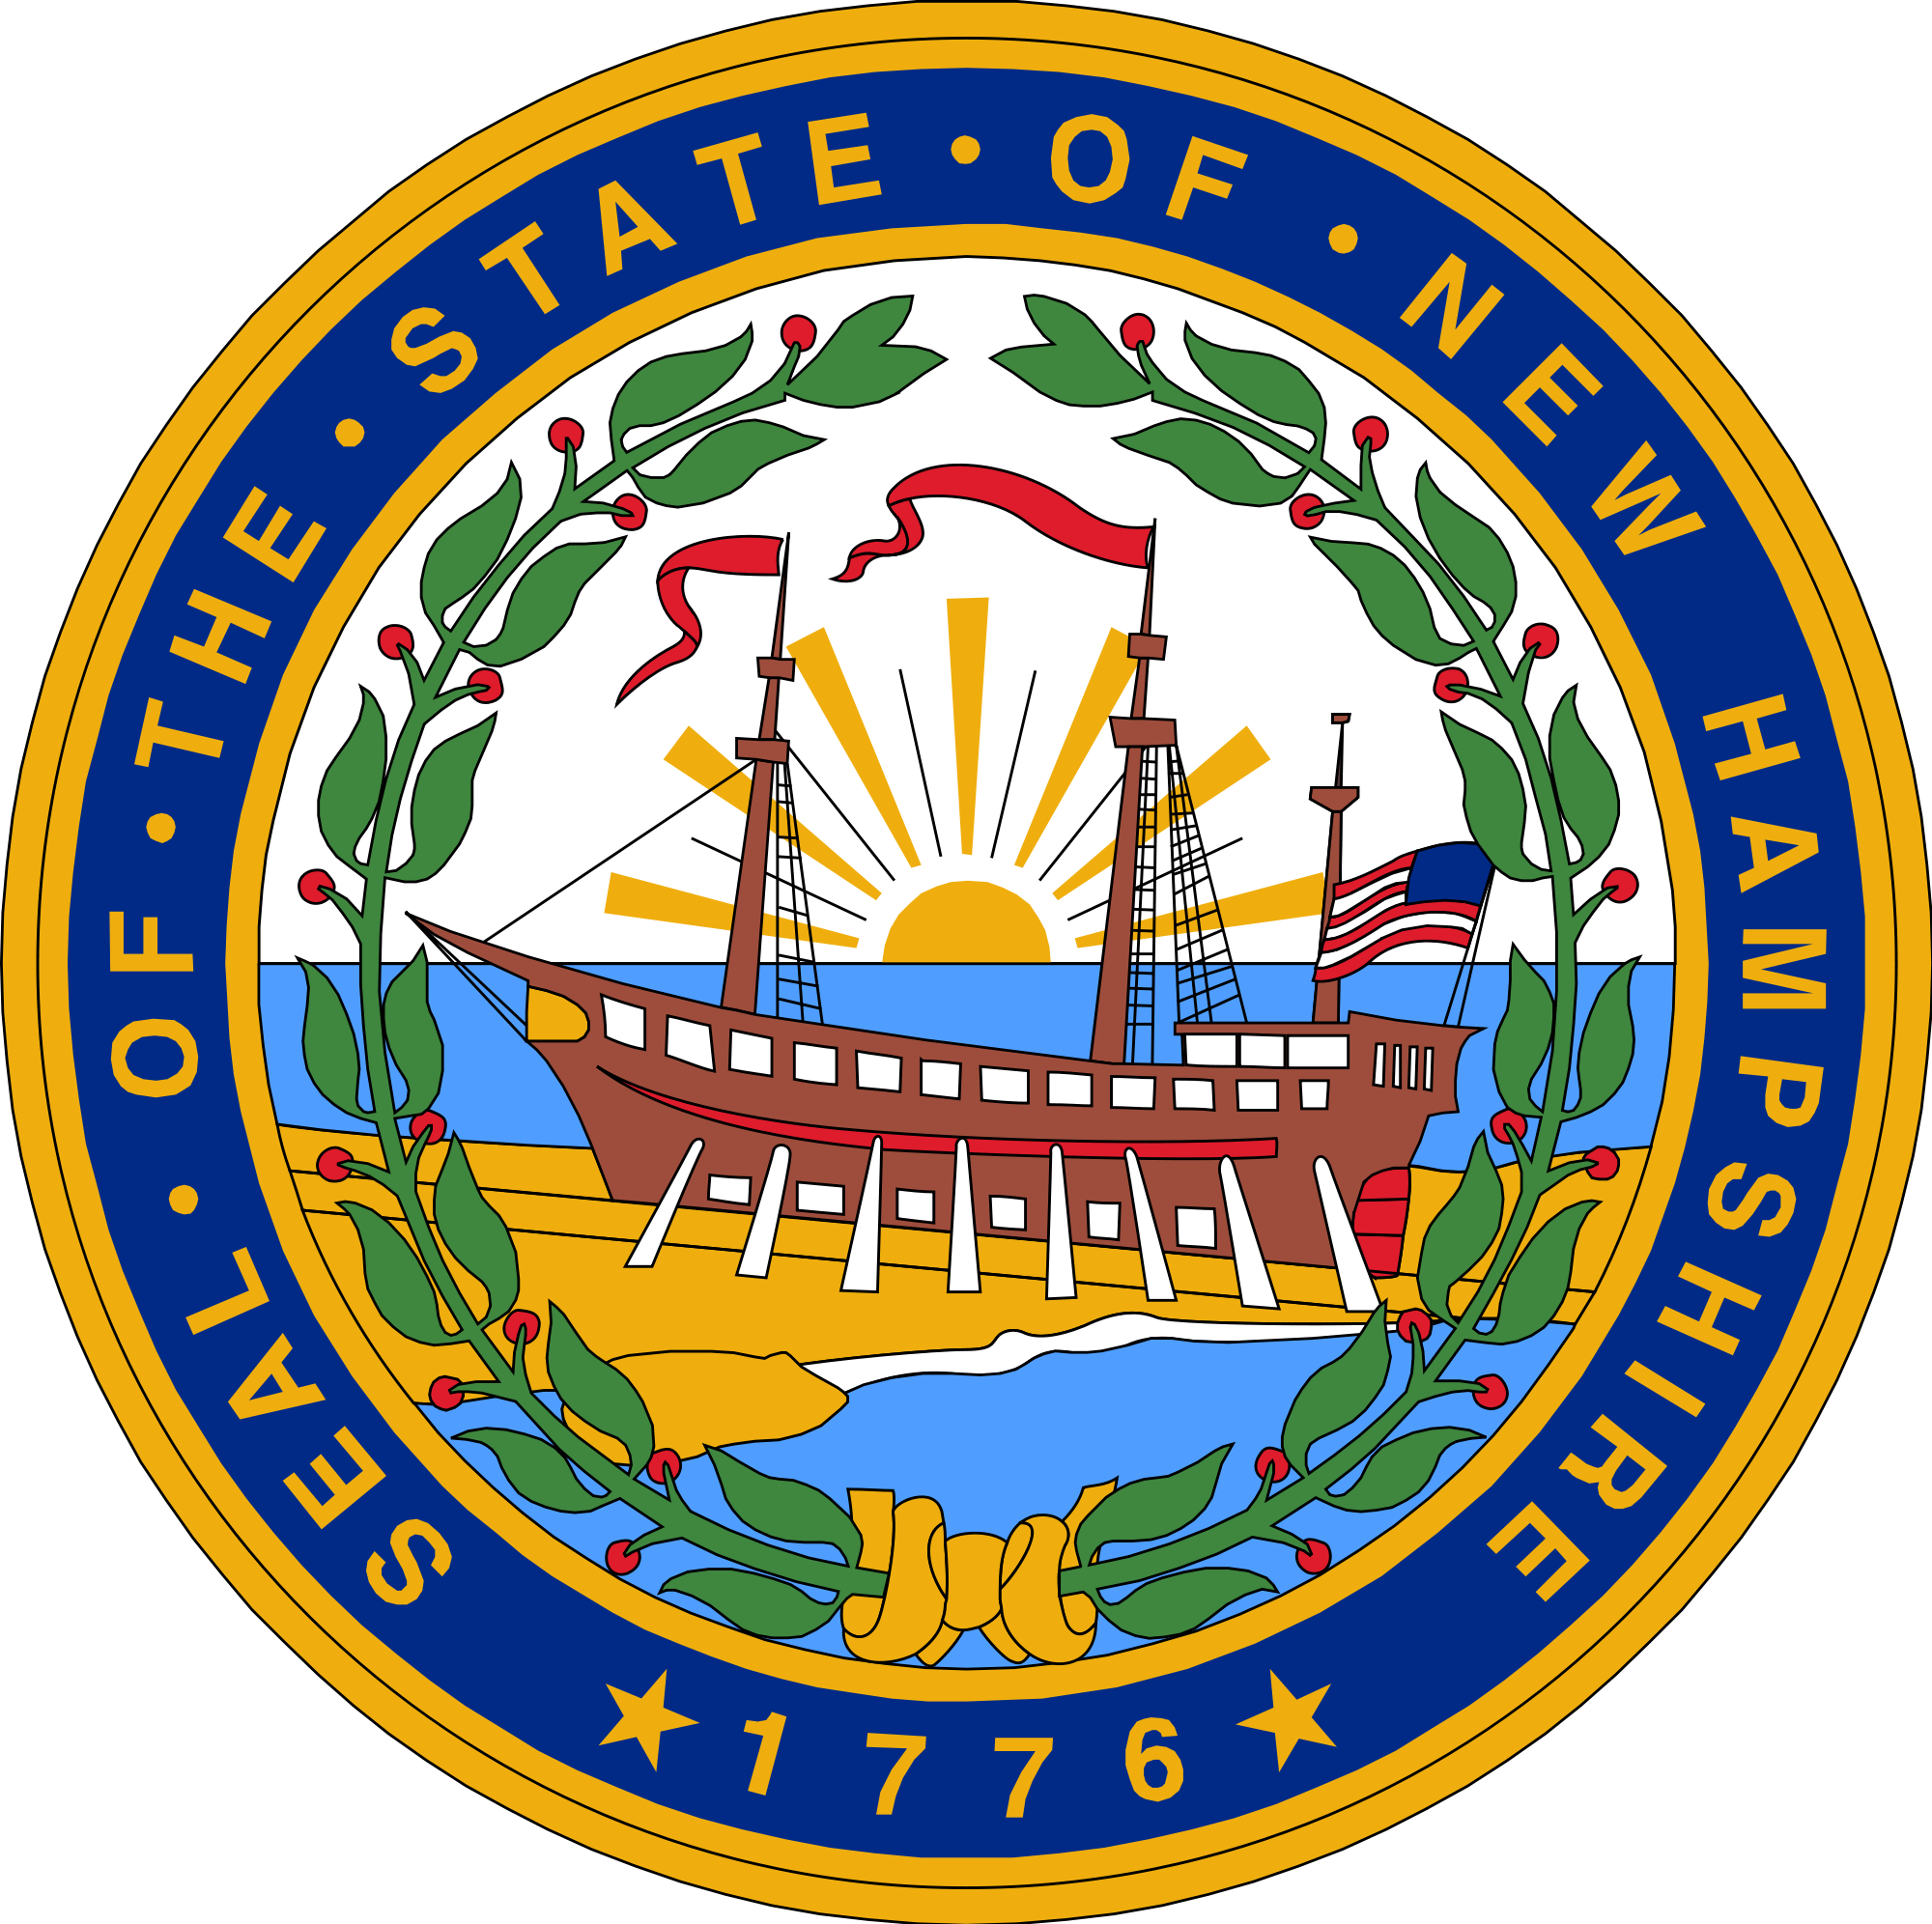 New Hampshire Department of Health and Human Services